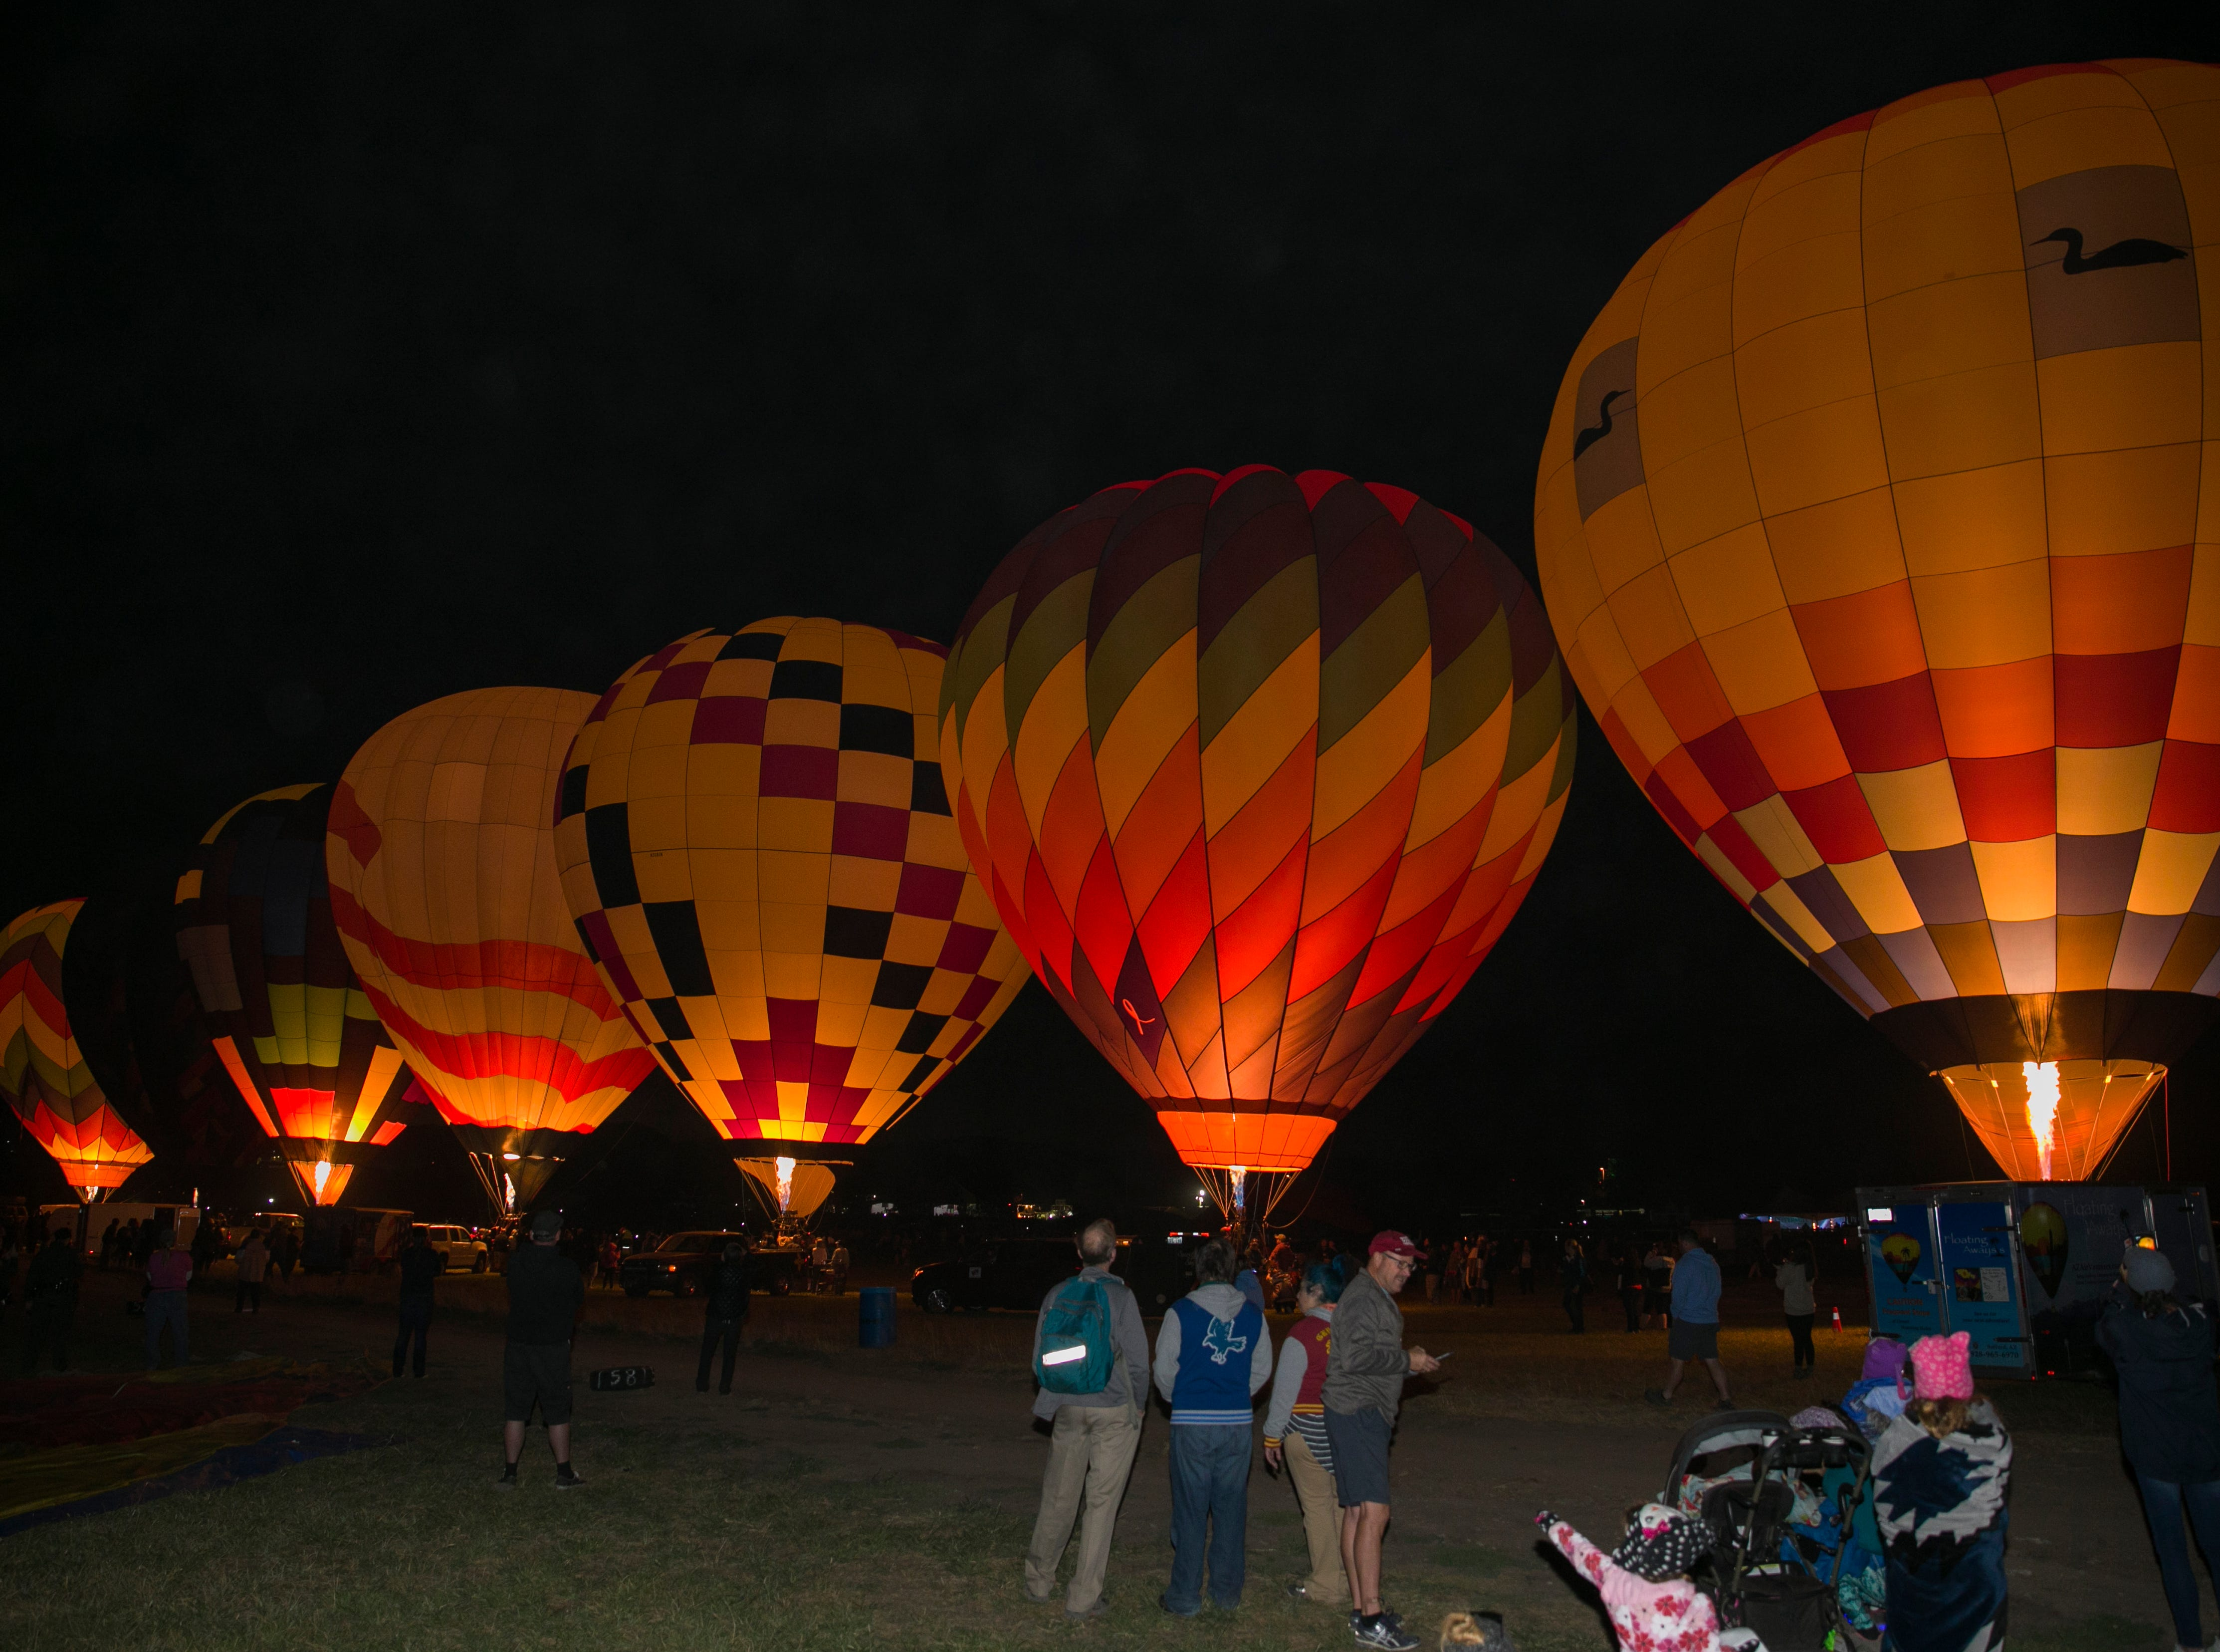 A photograph taken during the Great Reno Balloon Races held on Saturday, Sept. 8, 2018.